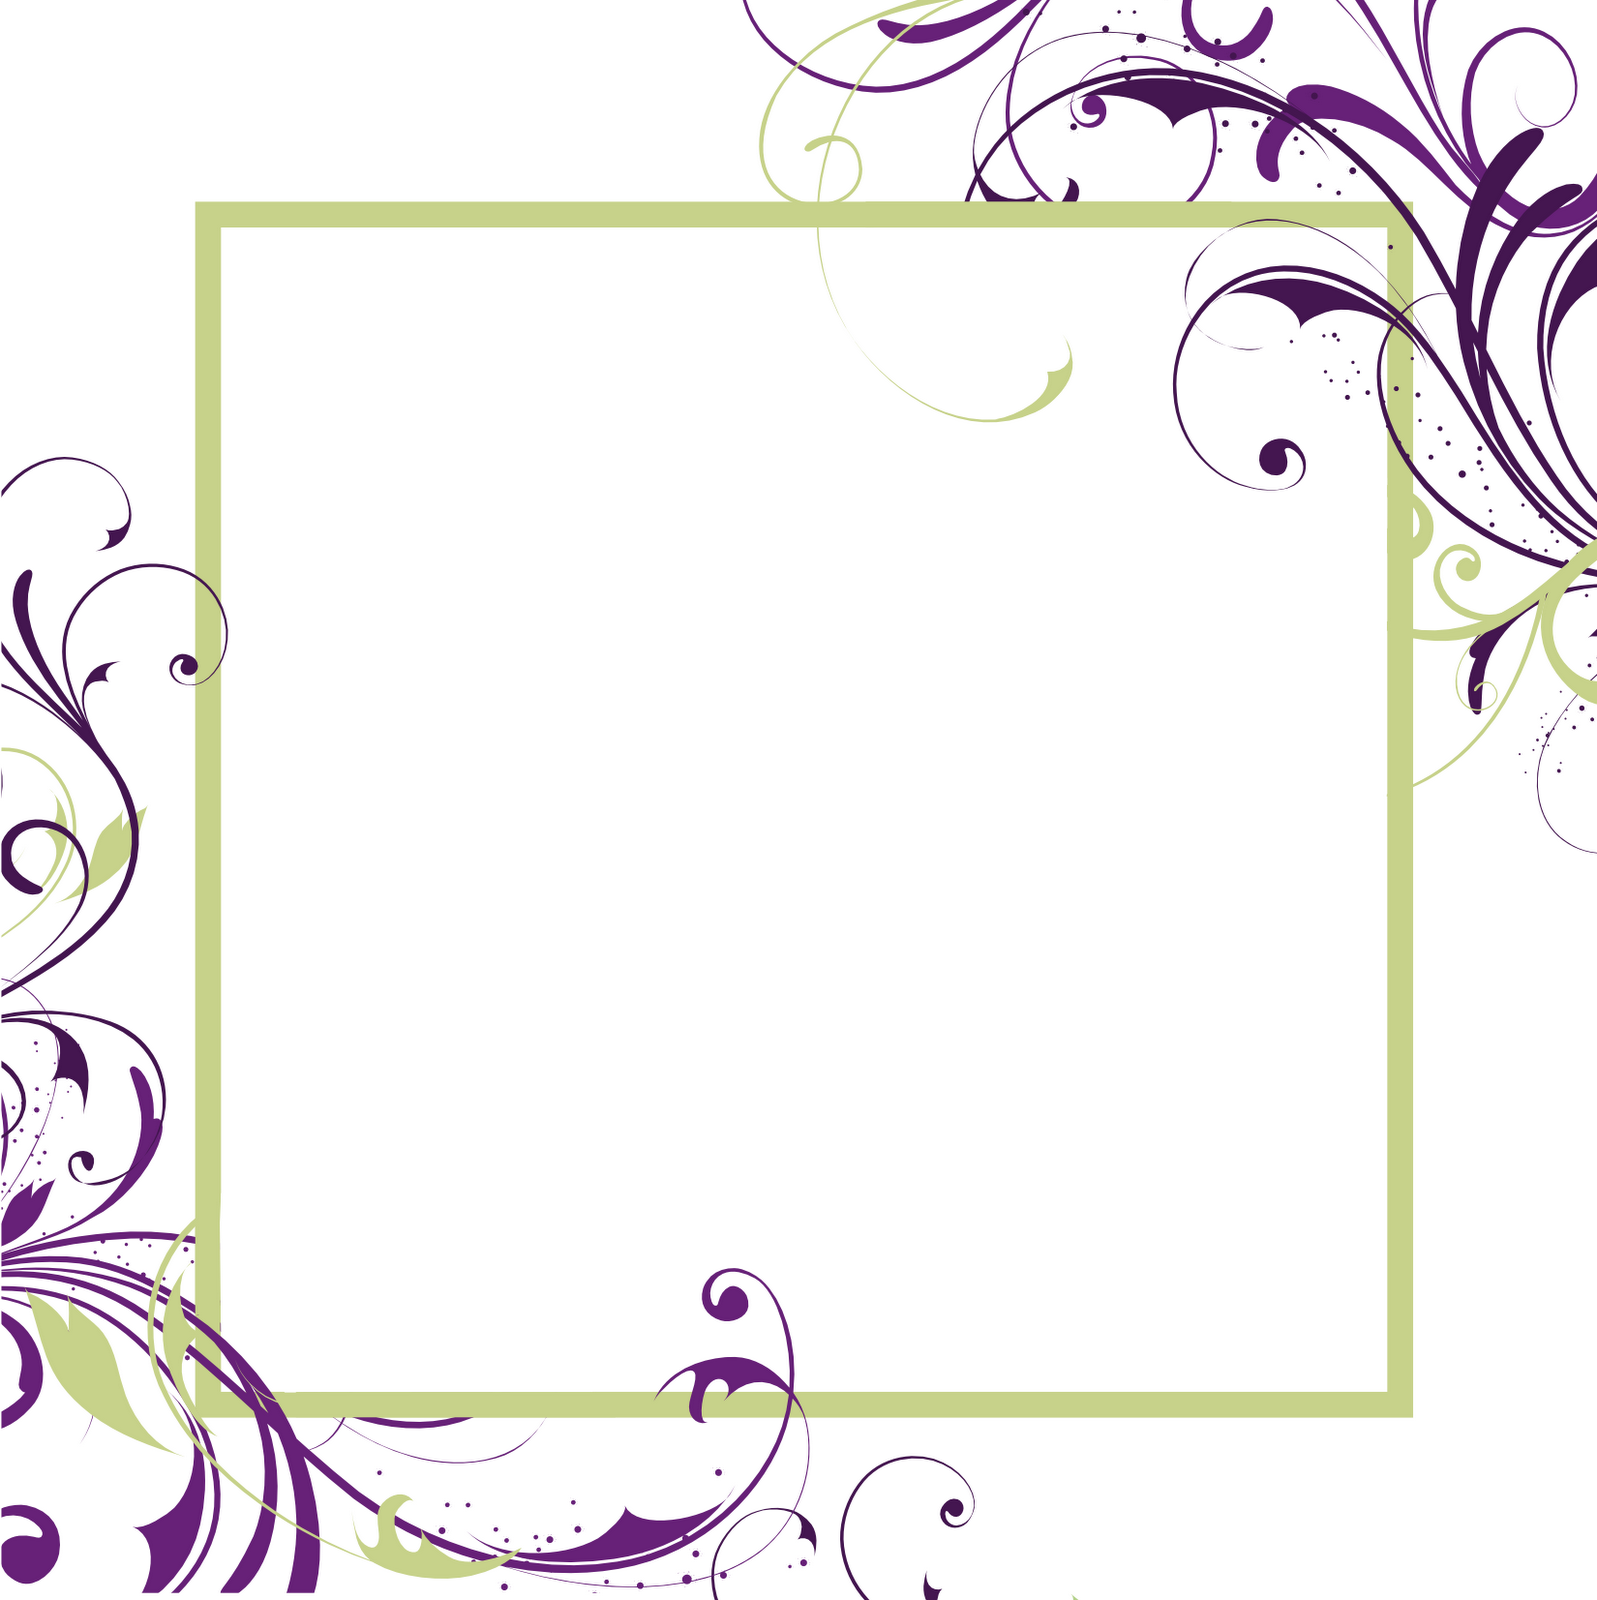 Printable Favors - Favor Templates - Print Your Own Favors